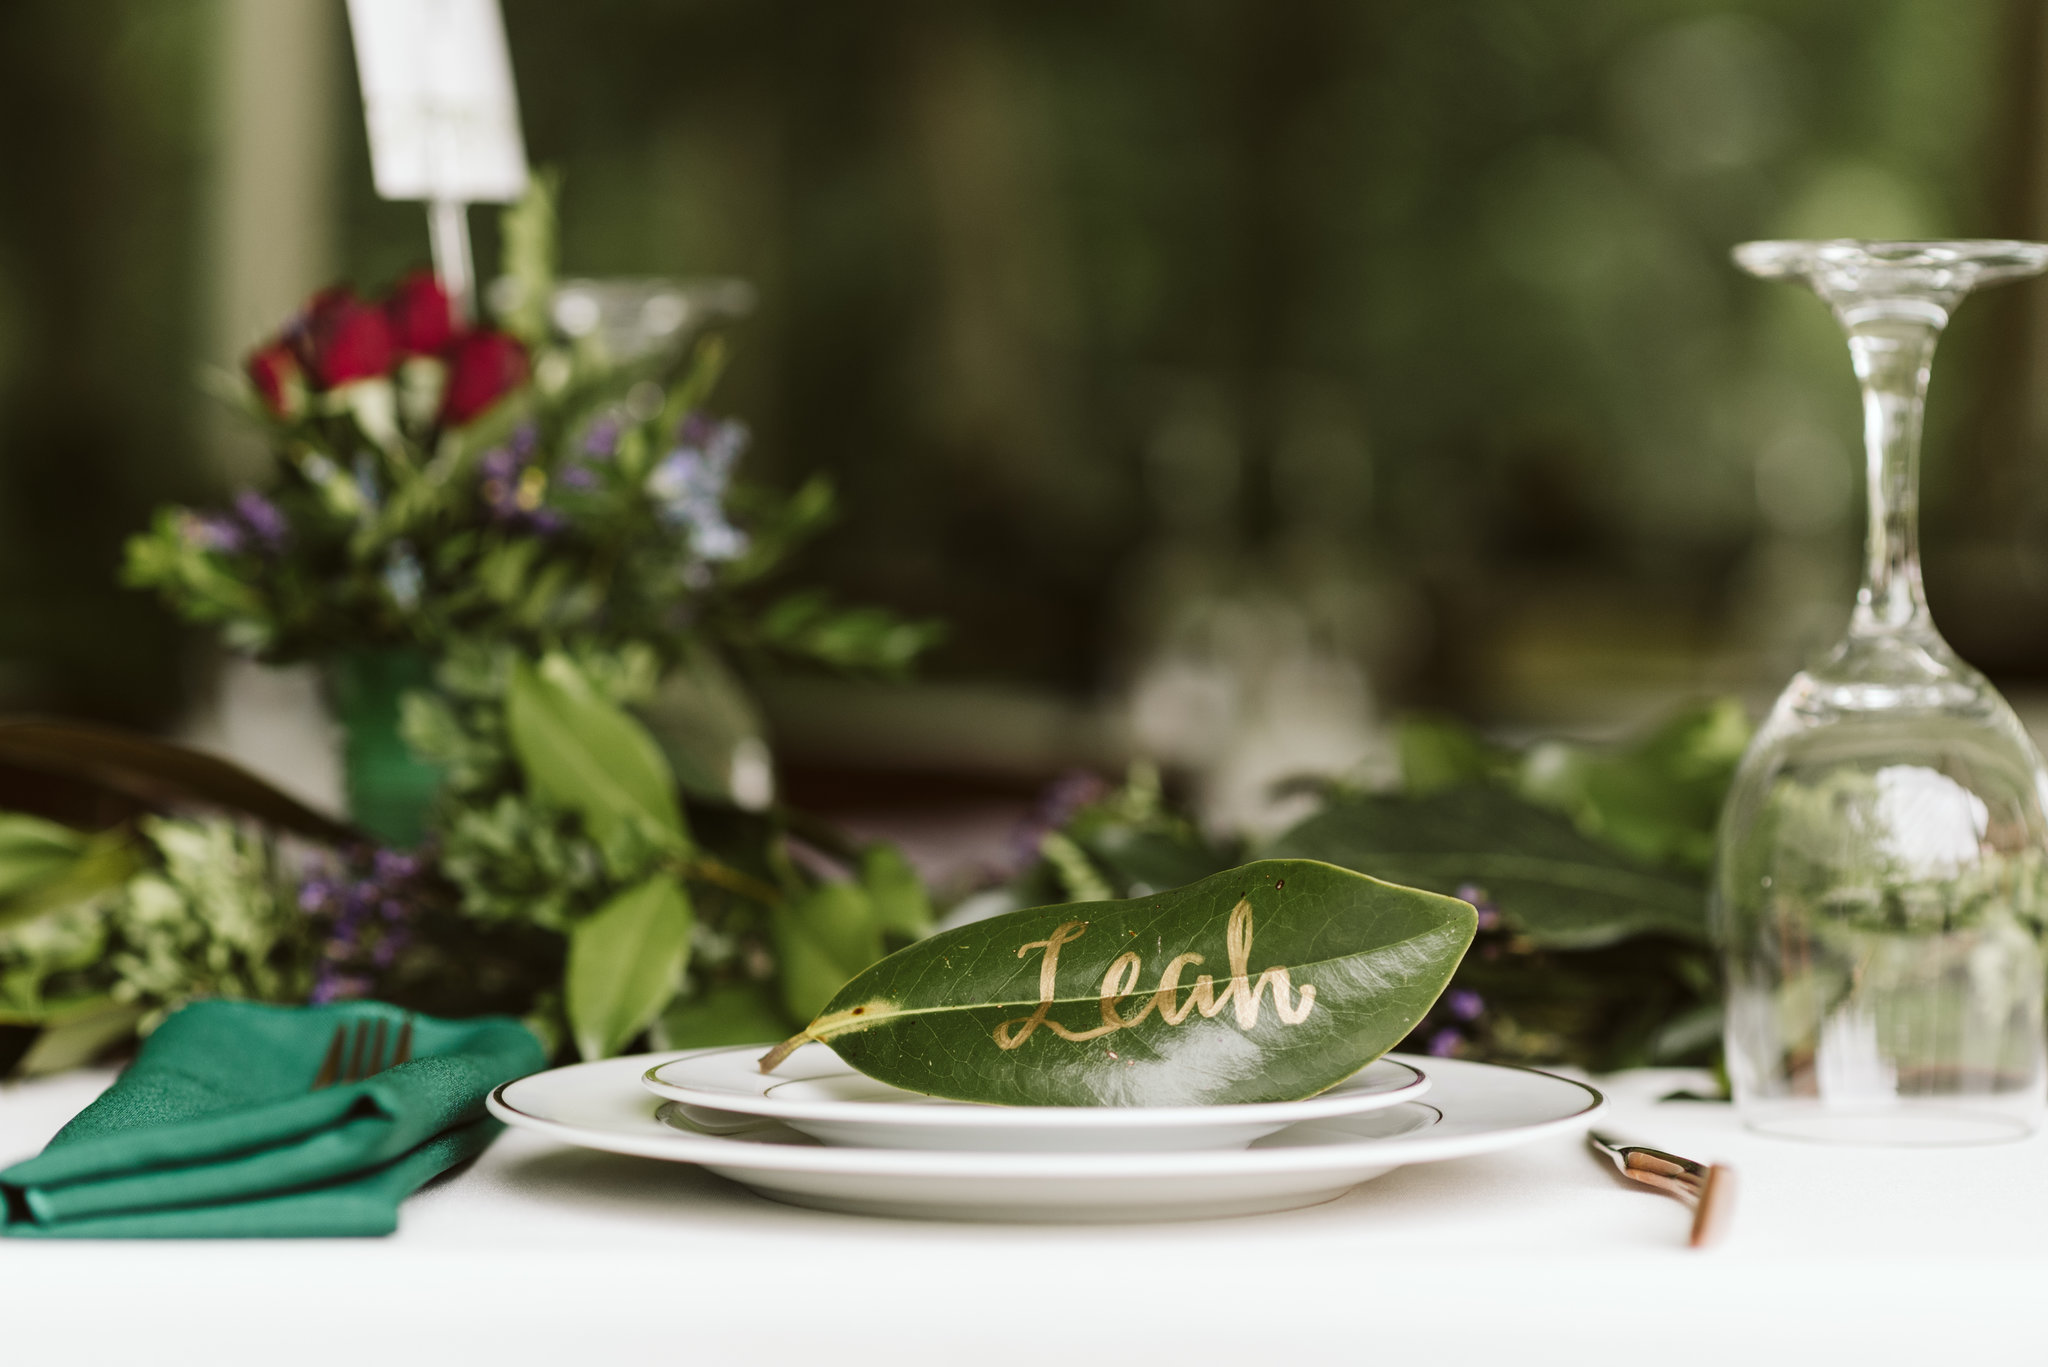 Annapolis, Quaker Wedding, Maryland Wedding Photographer, Intimate, Small Wedding, Vintage, DIY, Magnolia Leaf Namecards, Table Setting Closeup